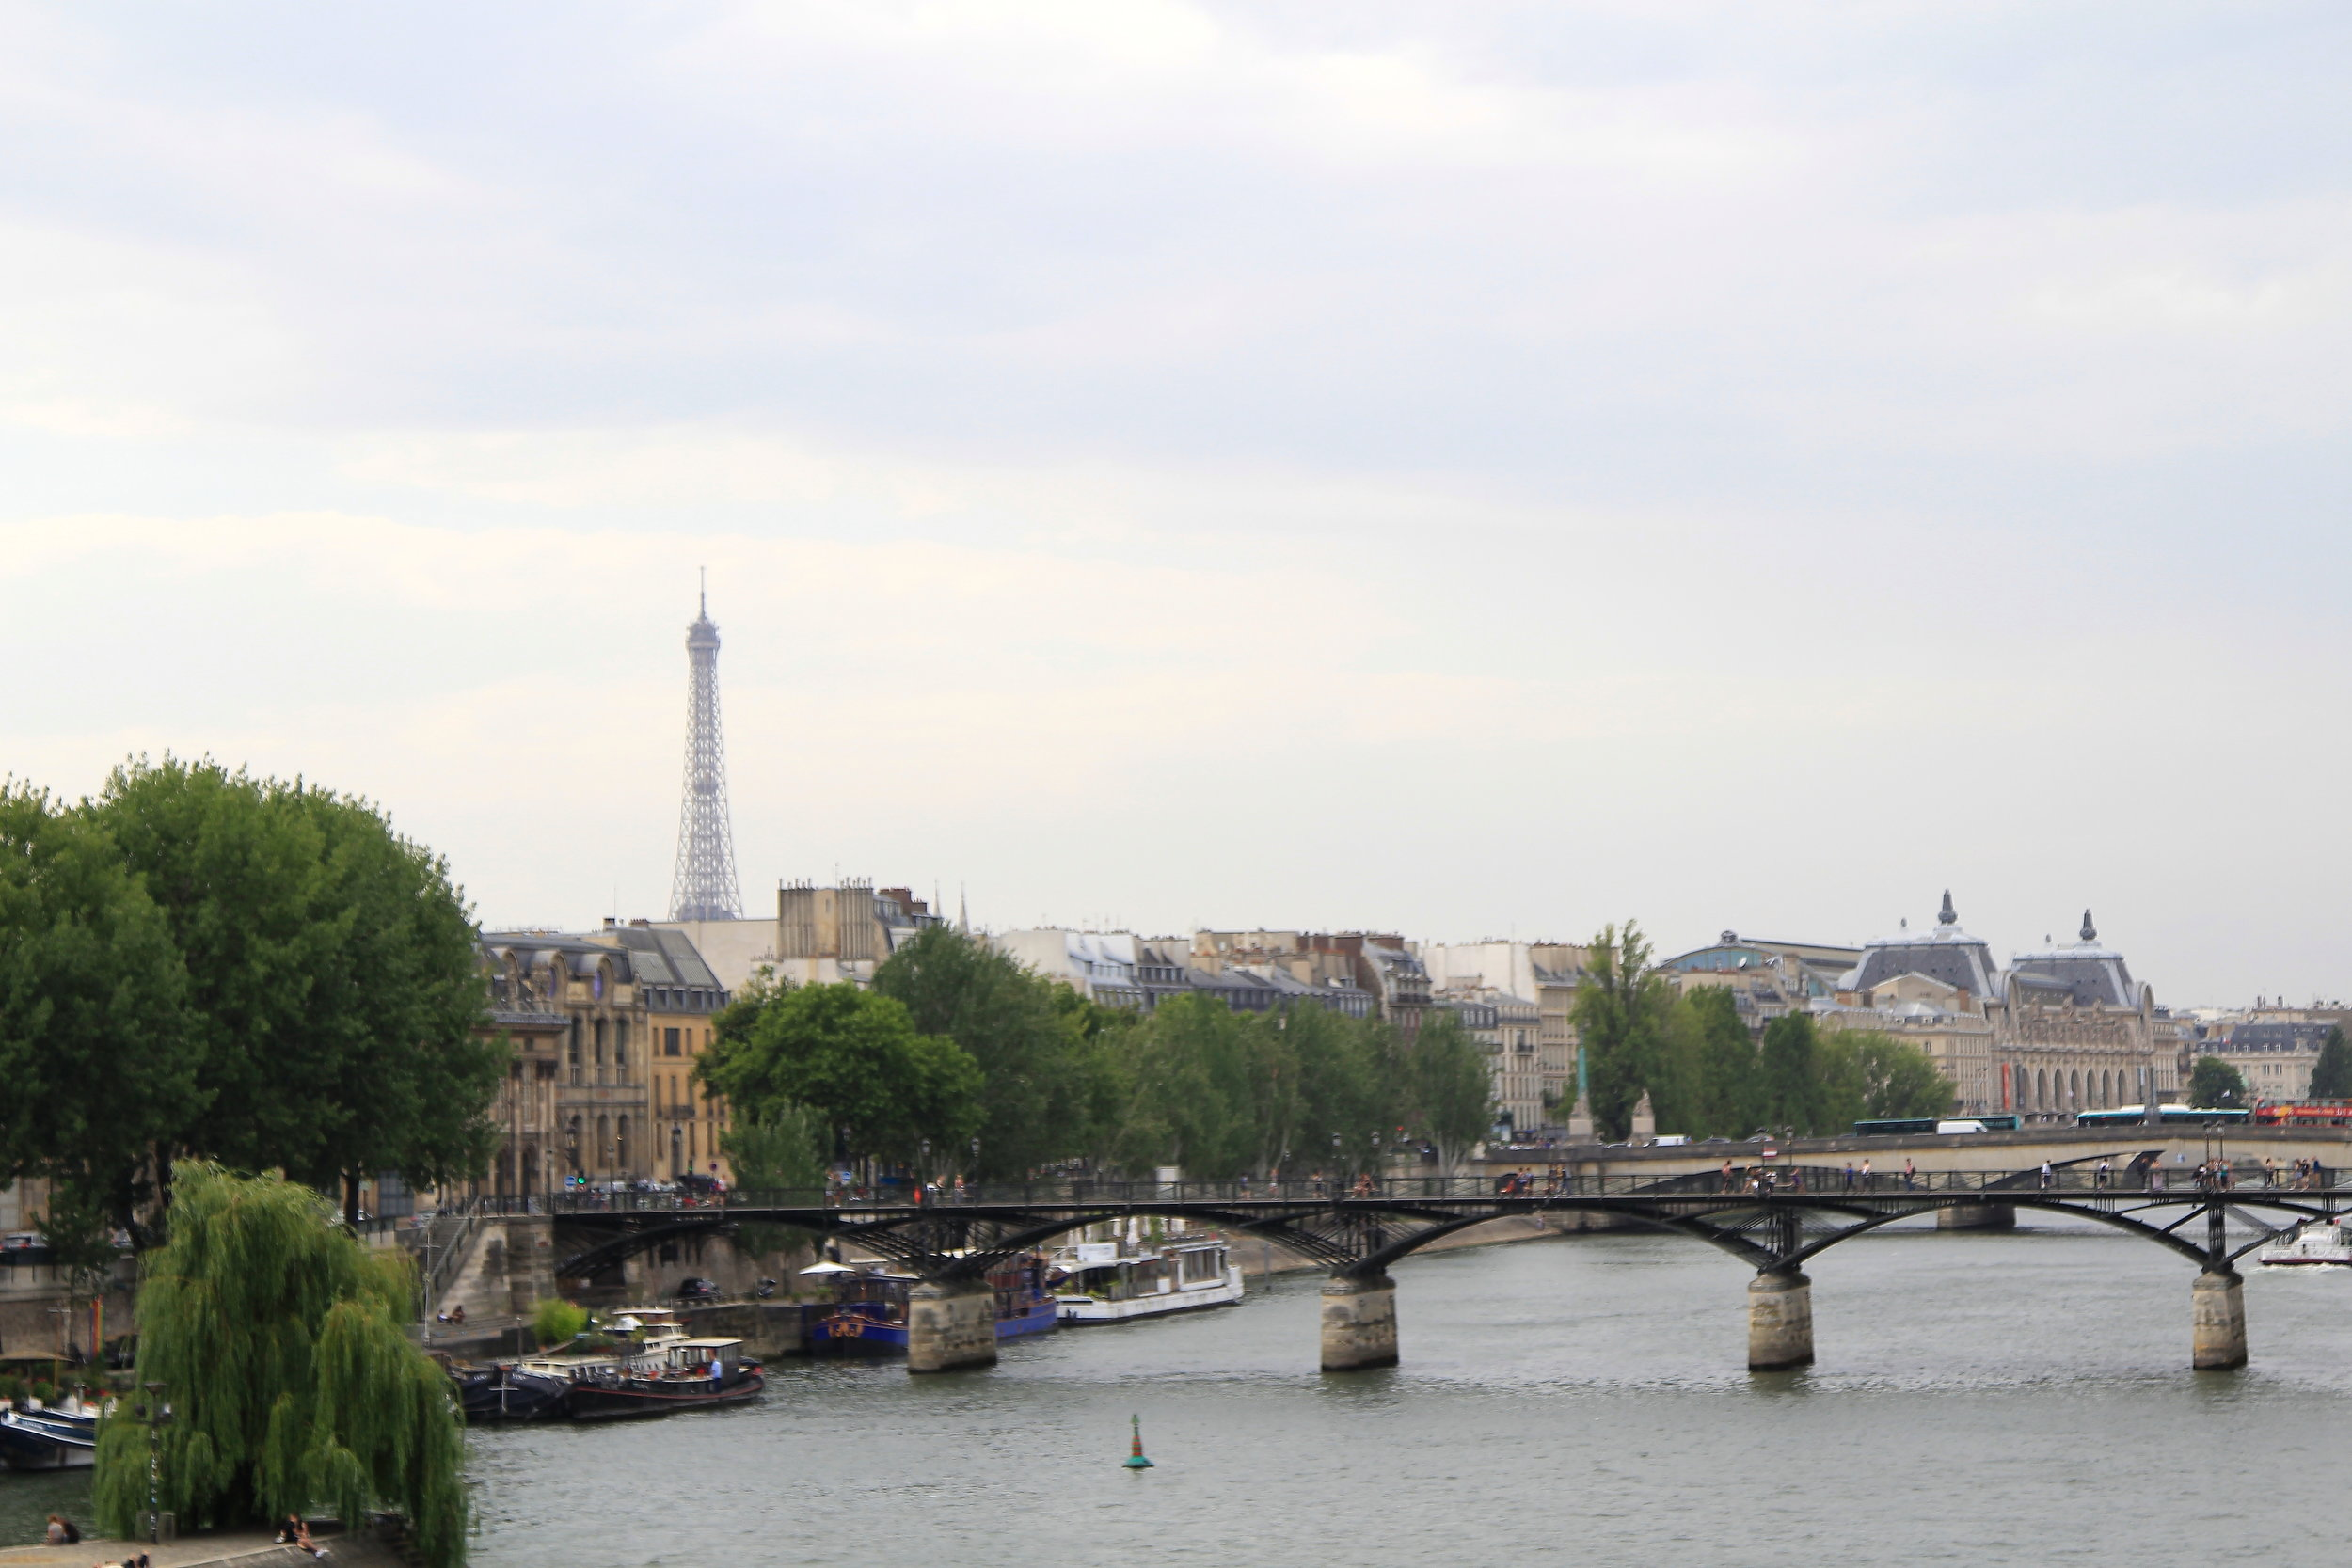 Looking over the Seine River in Paris